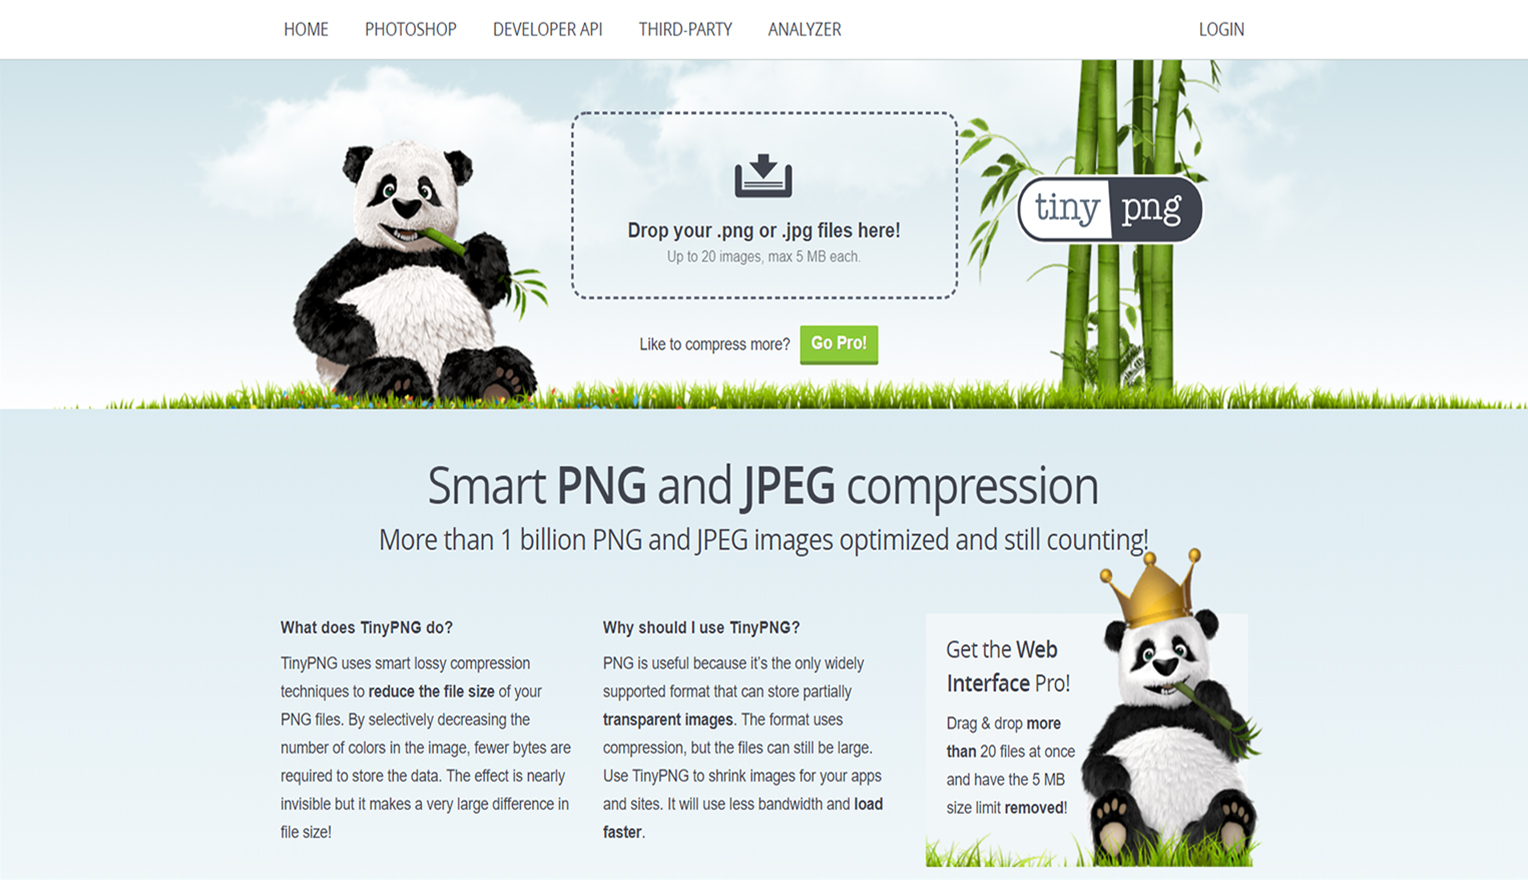 tinypng is the tool for optimizing images size in Shopify online store